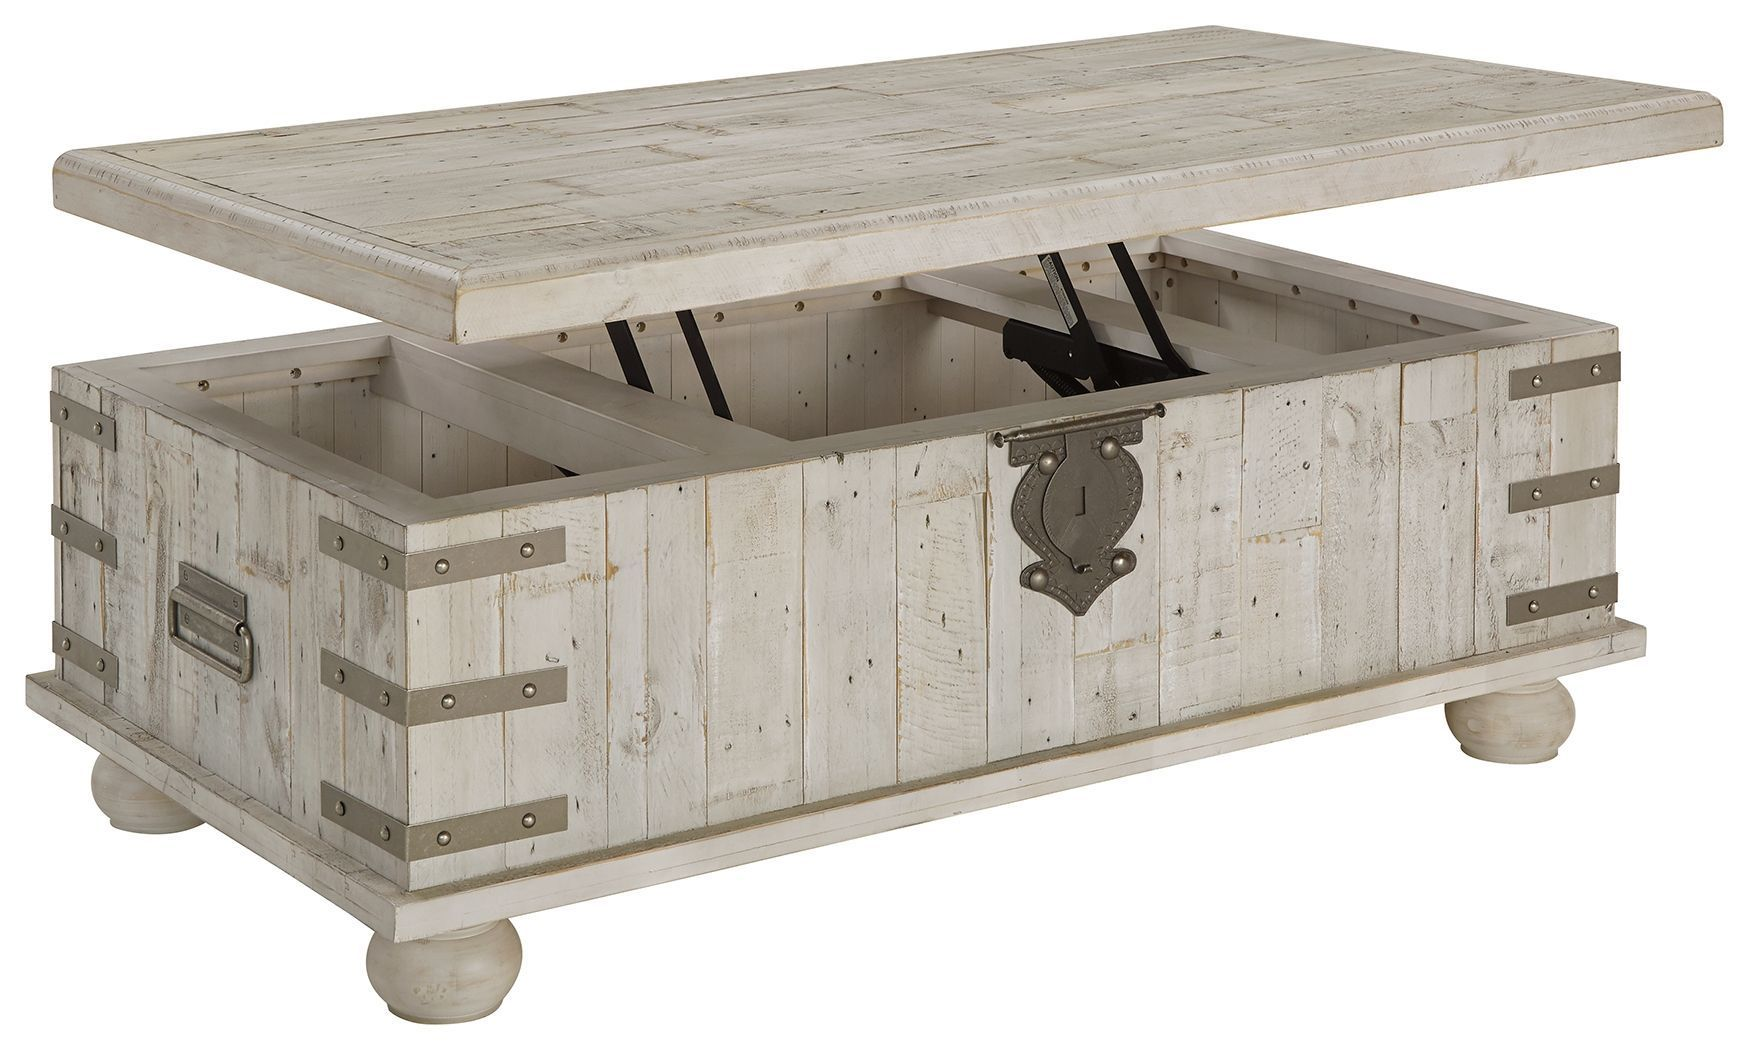 Carynhurst White Wash Gray Lift Top Cocktail Table In 2021 Coffee Table Trunk Coffee Table With Storage White Cocktail Tables [ 1050 x 1749 Pixel ]